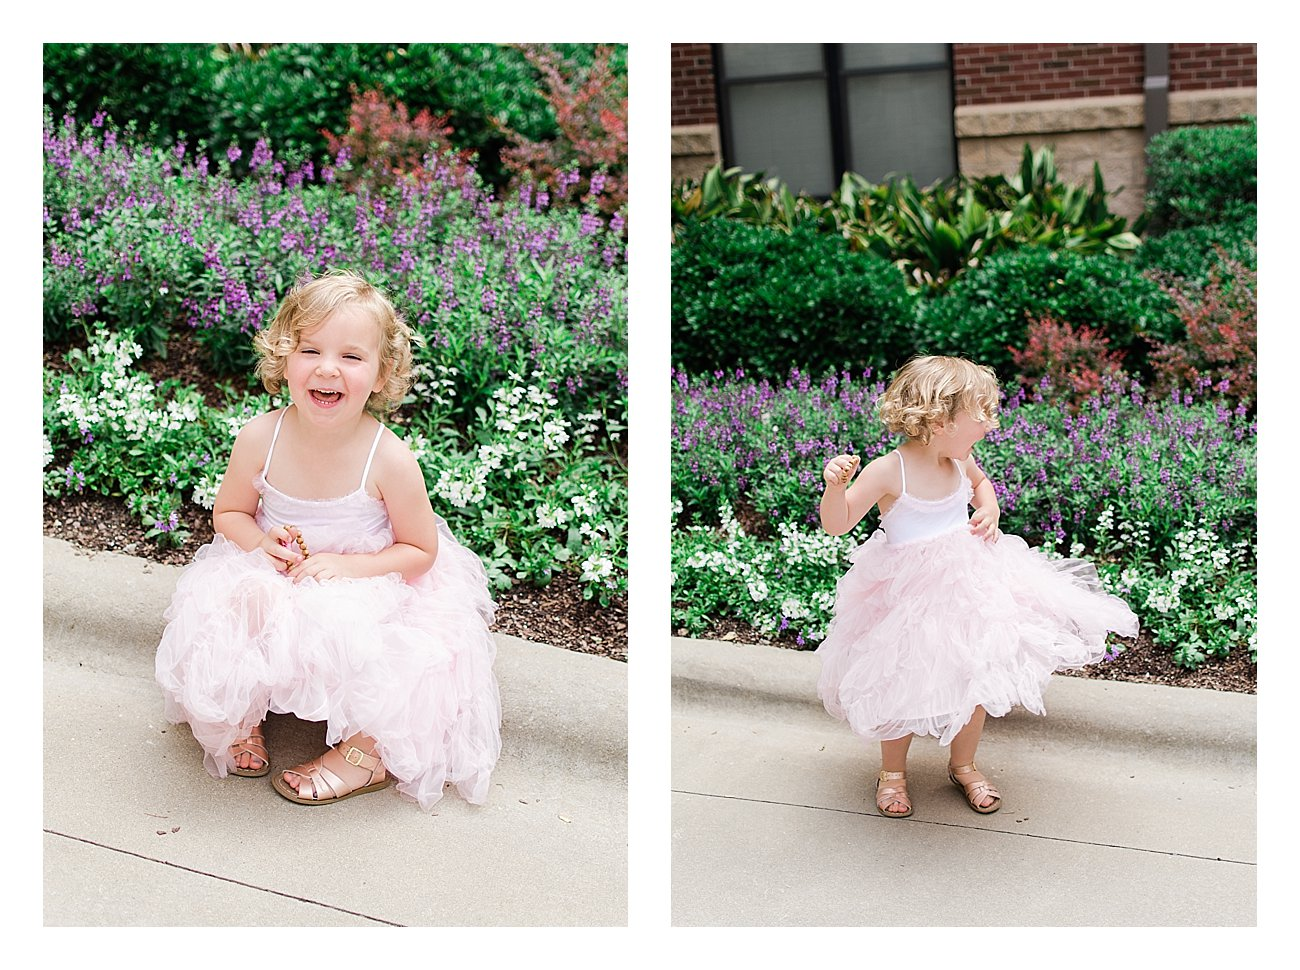 Ethical Wedding Guest Outfit Ideas for Mommy & Me by ethical fashion blogger Still Being Molly